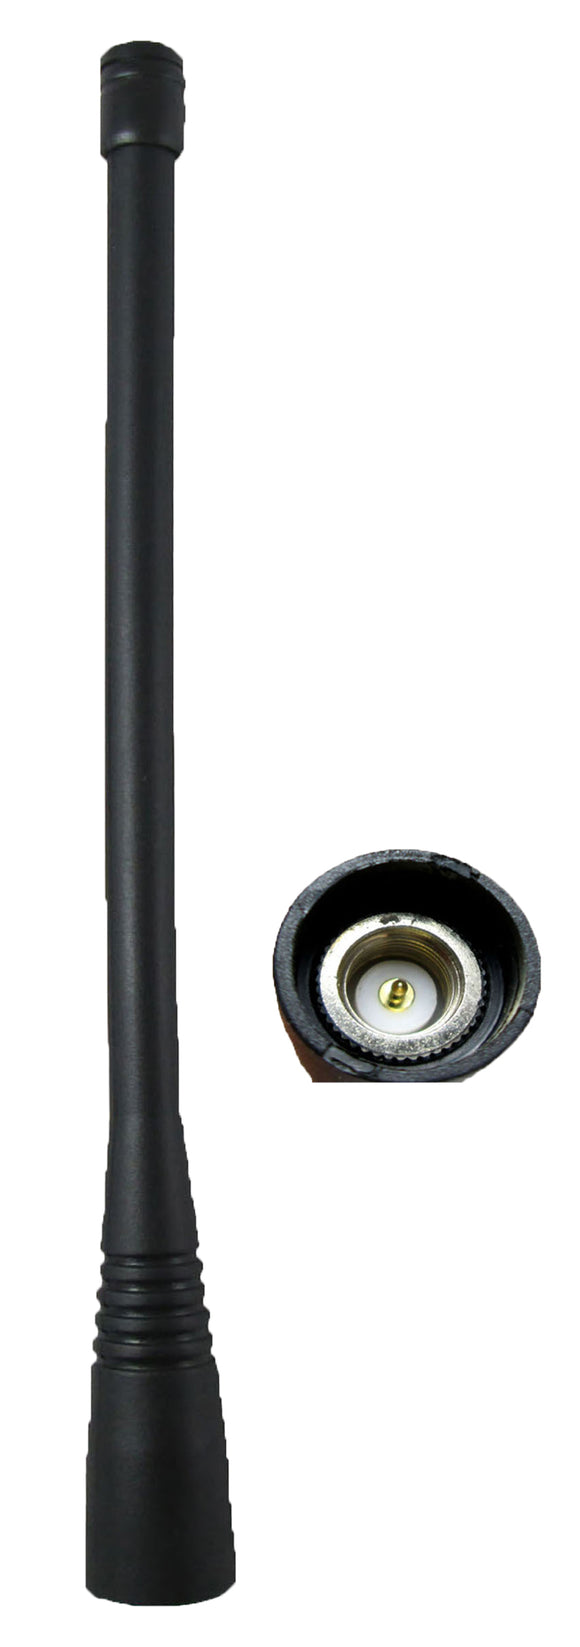 Antenna SMA UHF long whip AN160U for Vertex VX-160 XV-210 VX180 and more